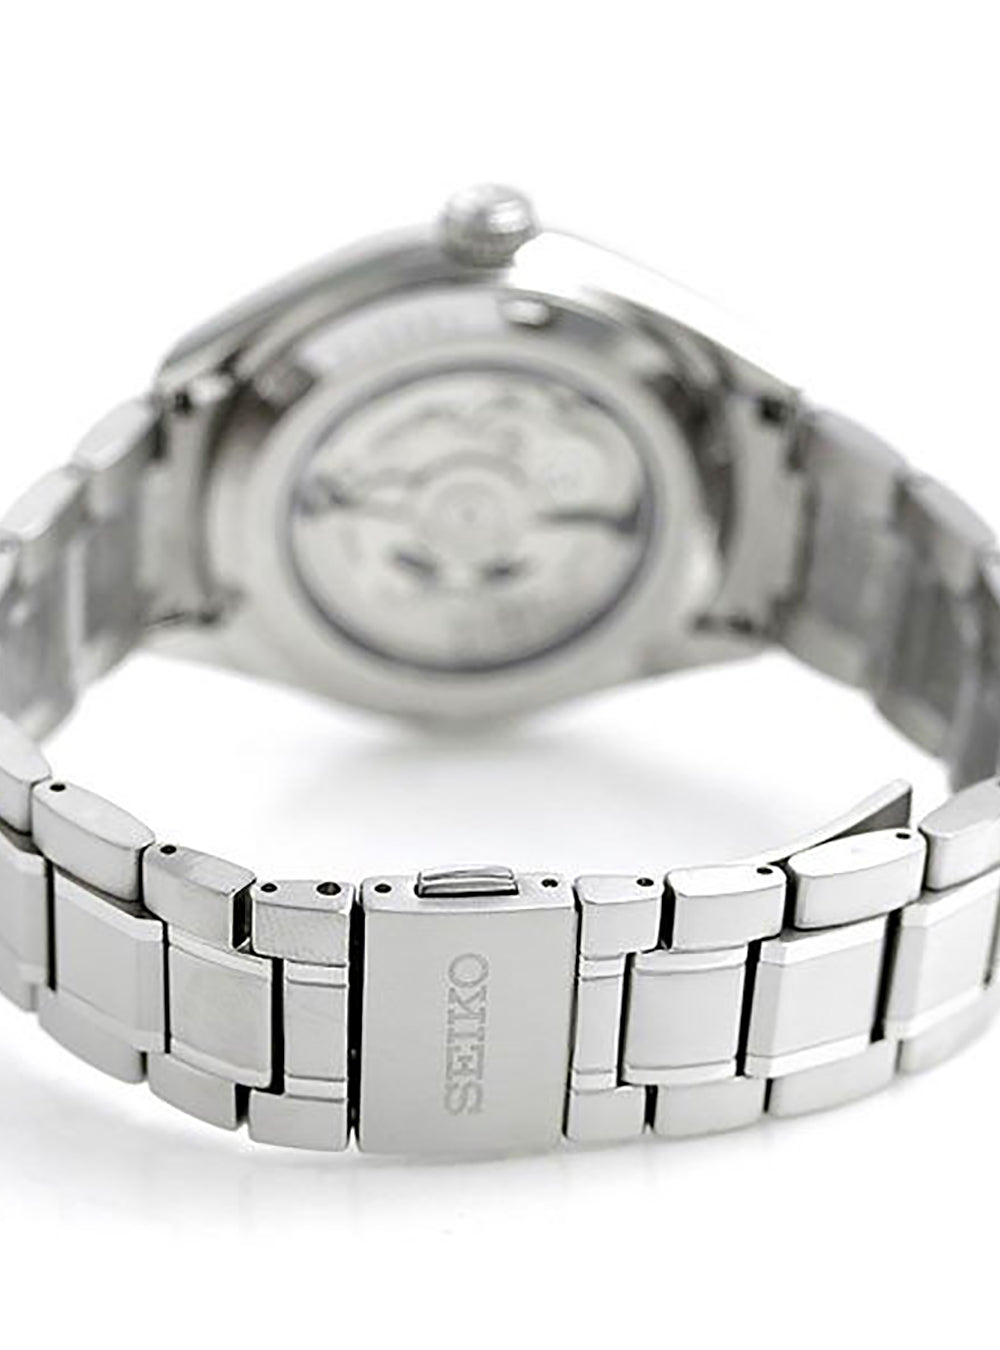 SEIKO AUTOMATIC PRESAGE SARX057 TITANIUM MADE IN JAPAN JDM